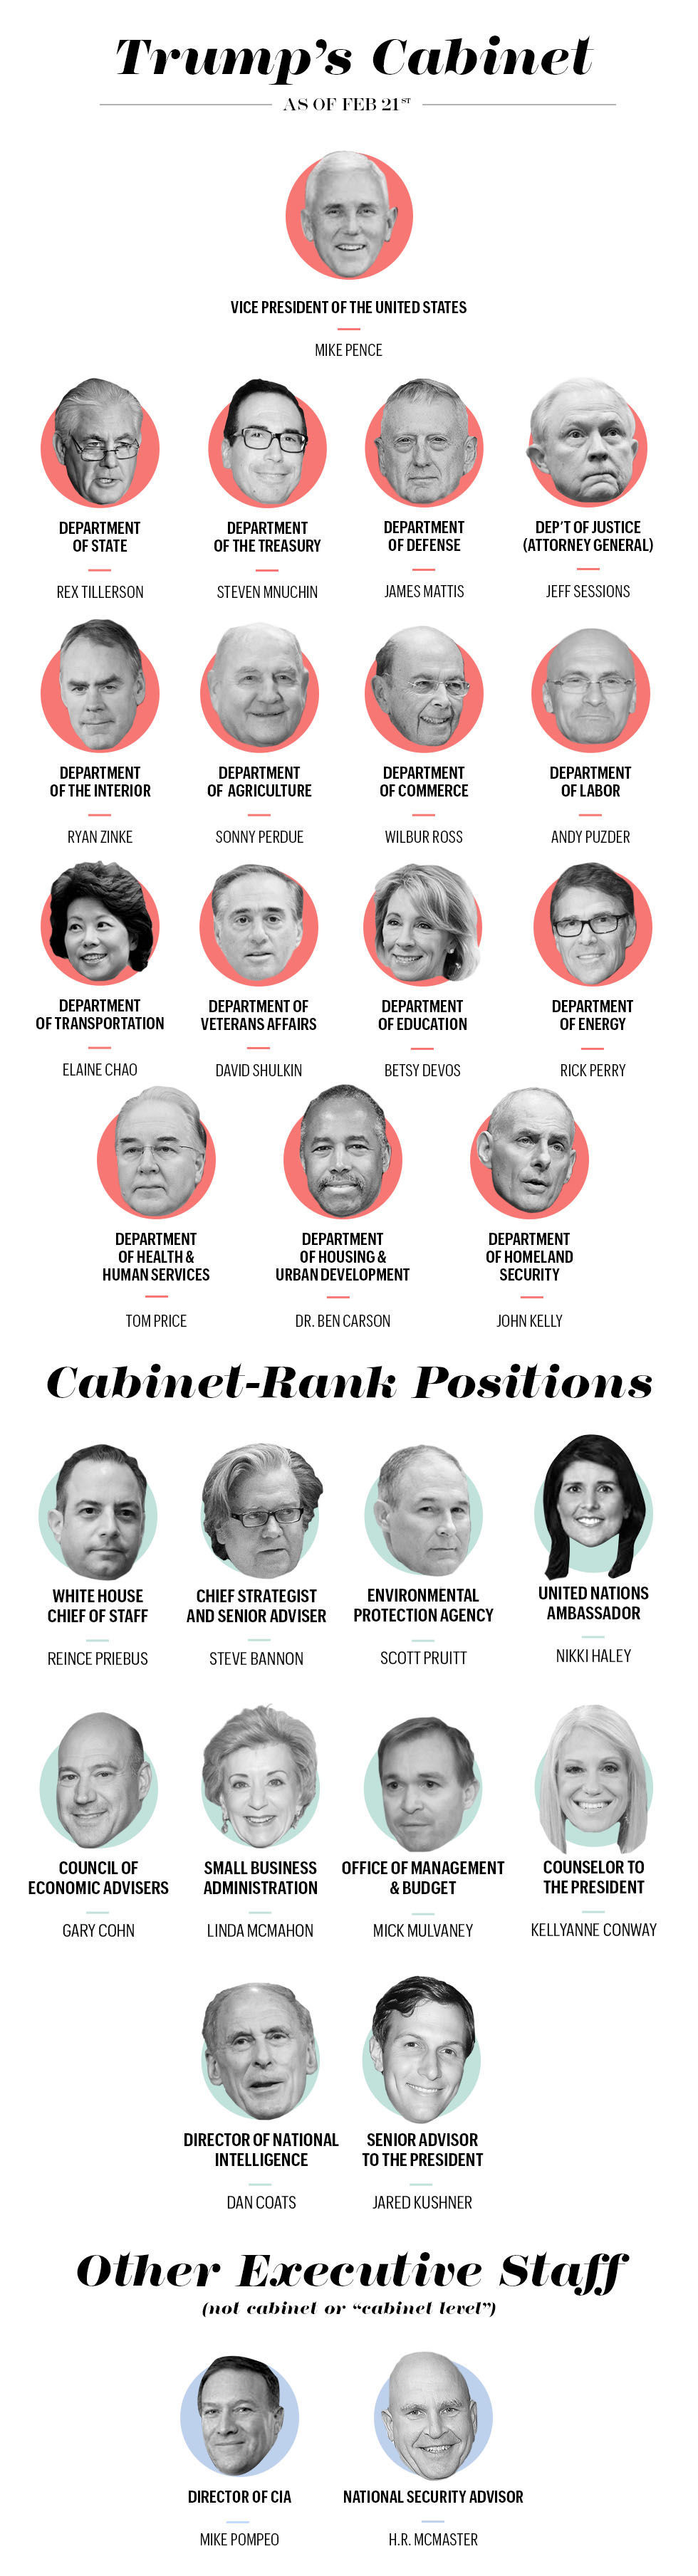 Which Cabinet Officer Would Be Responsible For Foreign Affairs ...